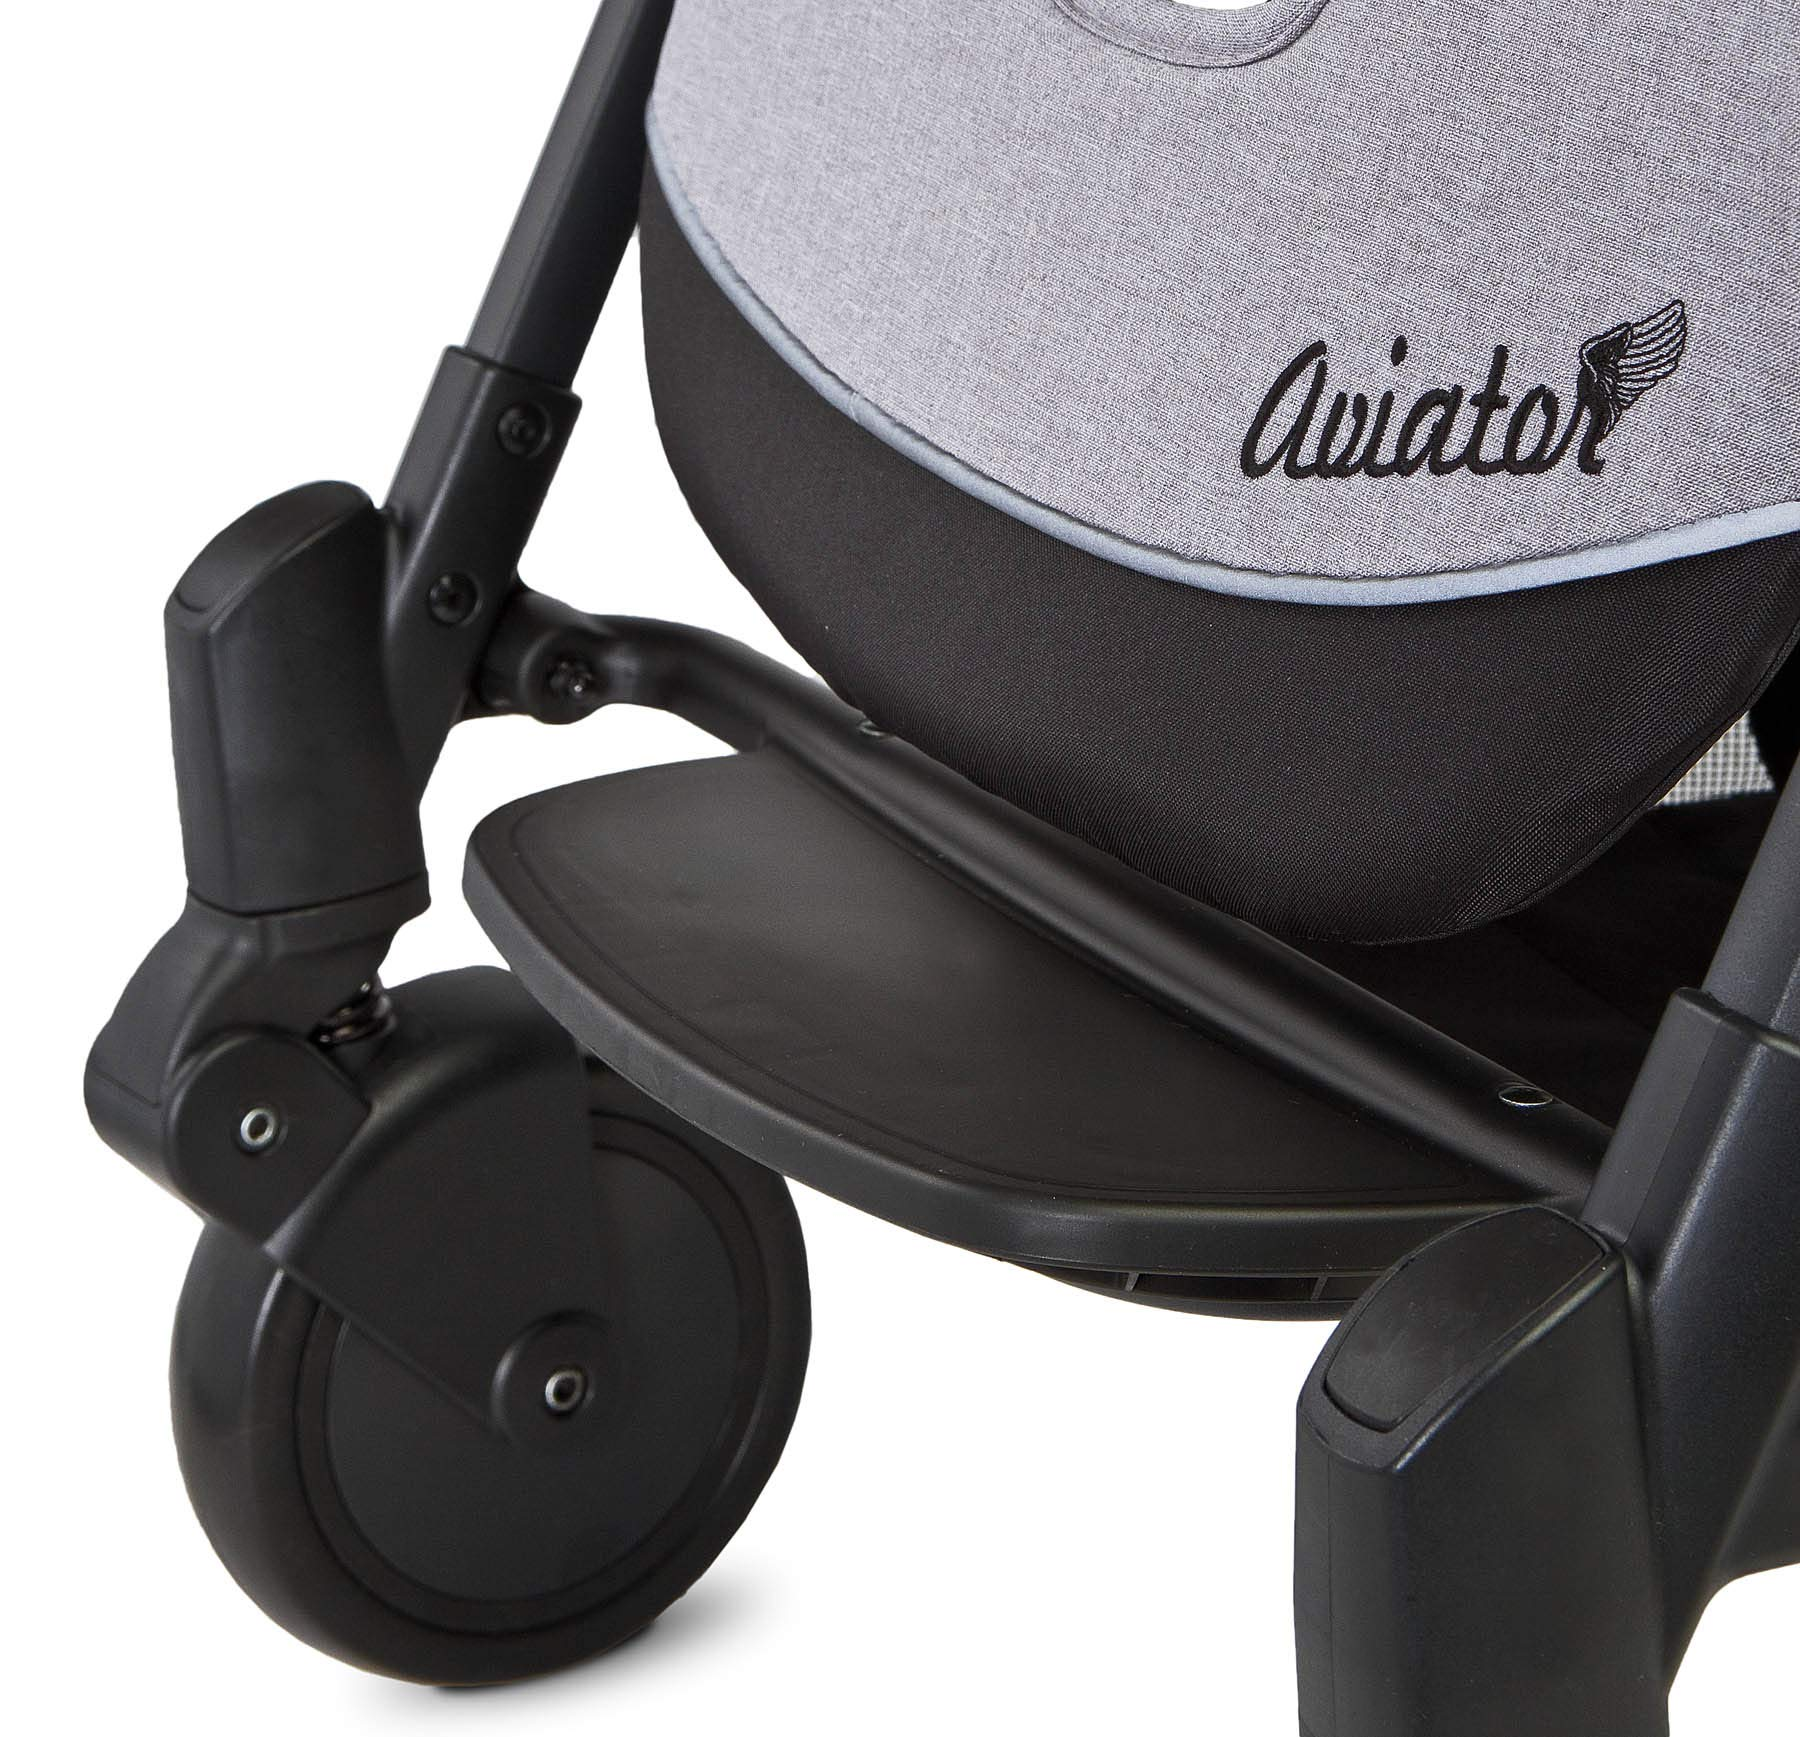 Aviator Ultralight Pushchair Grey Caretero Stroller for babies from 6 months Month weighing up to 15 kg Compact size and light weight (7.1kg) for easy manoeuvring and transport Eva foam wheels front with cushioning for driving comfort 2